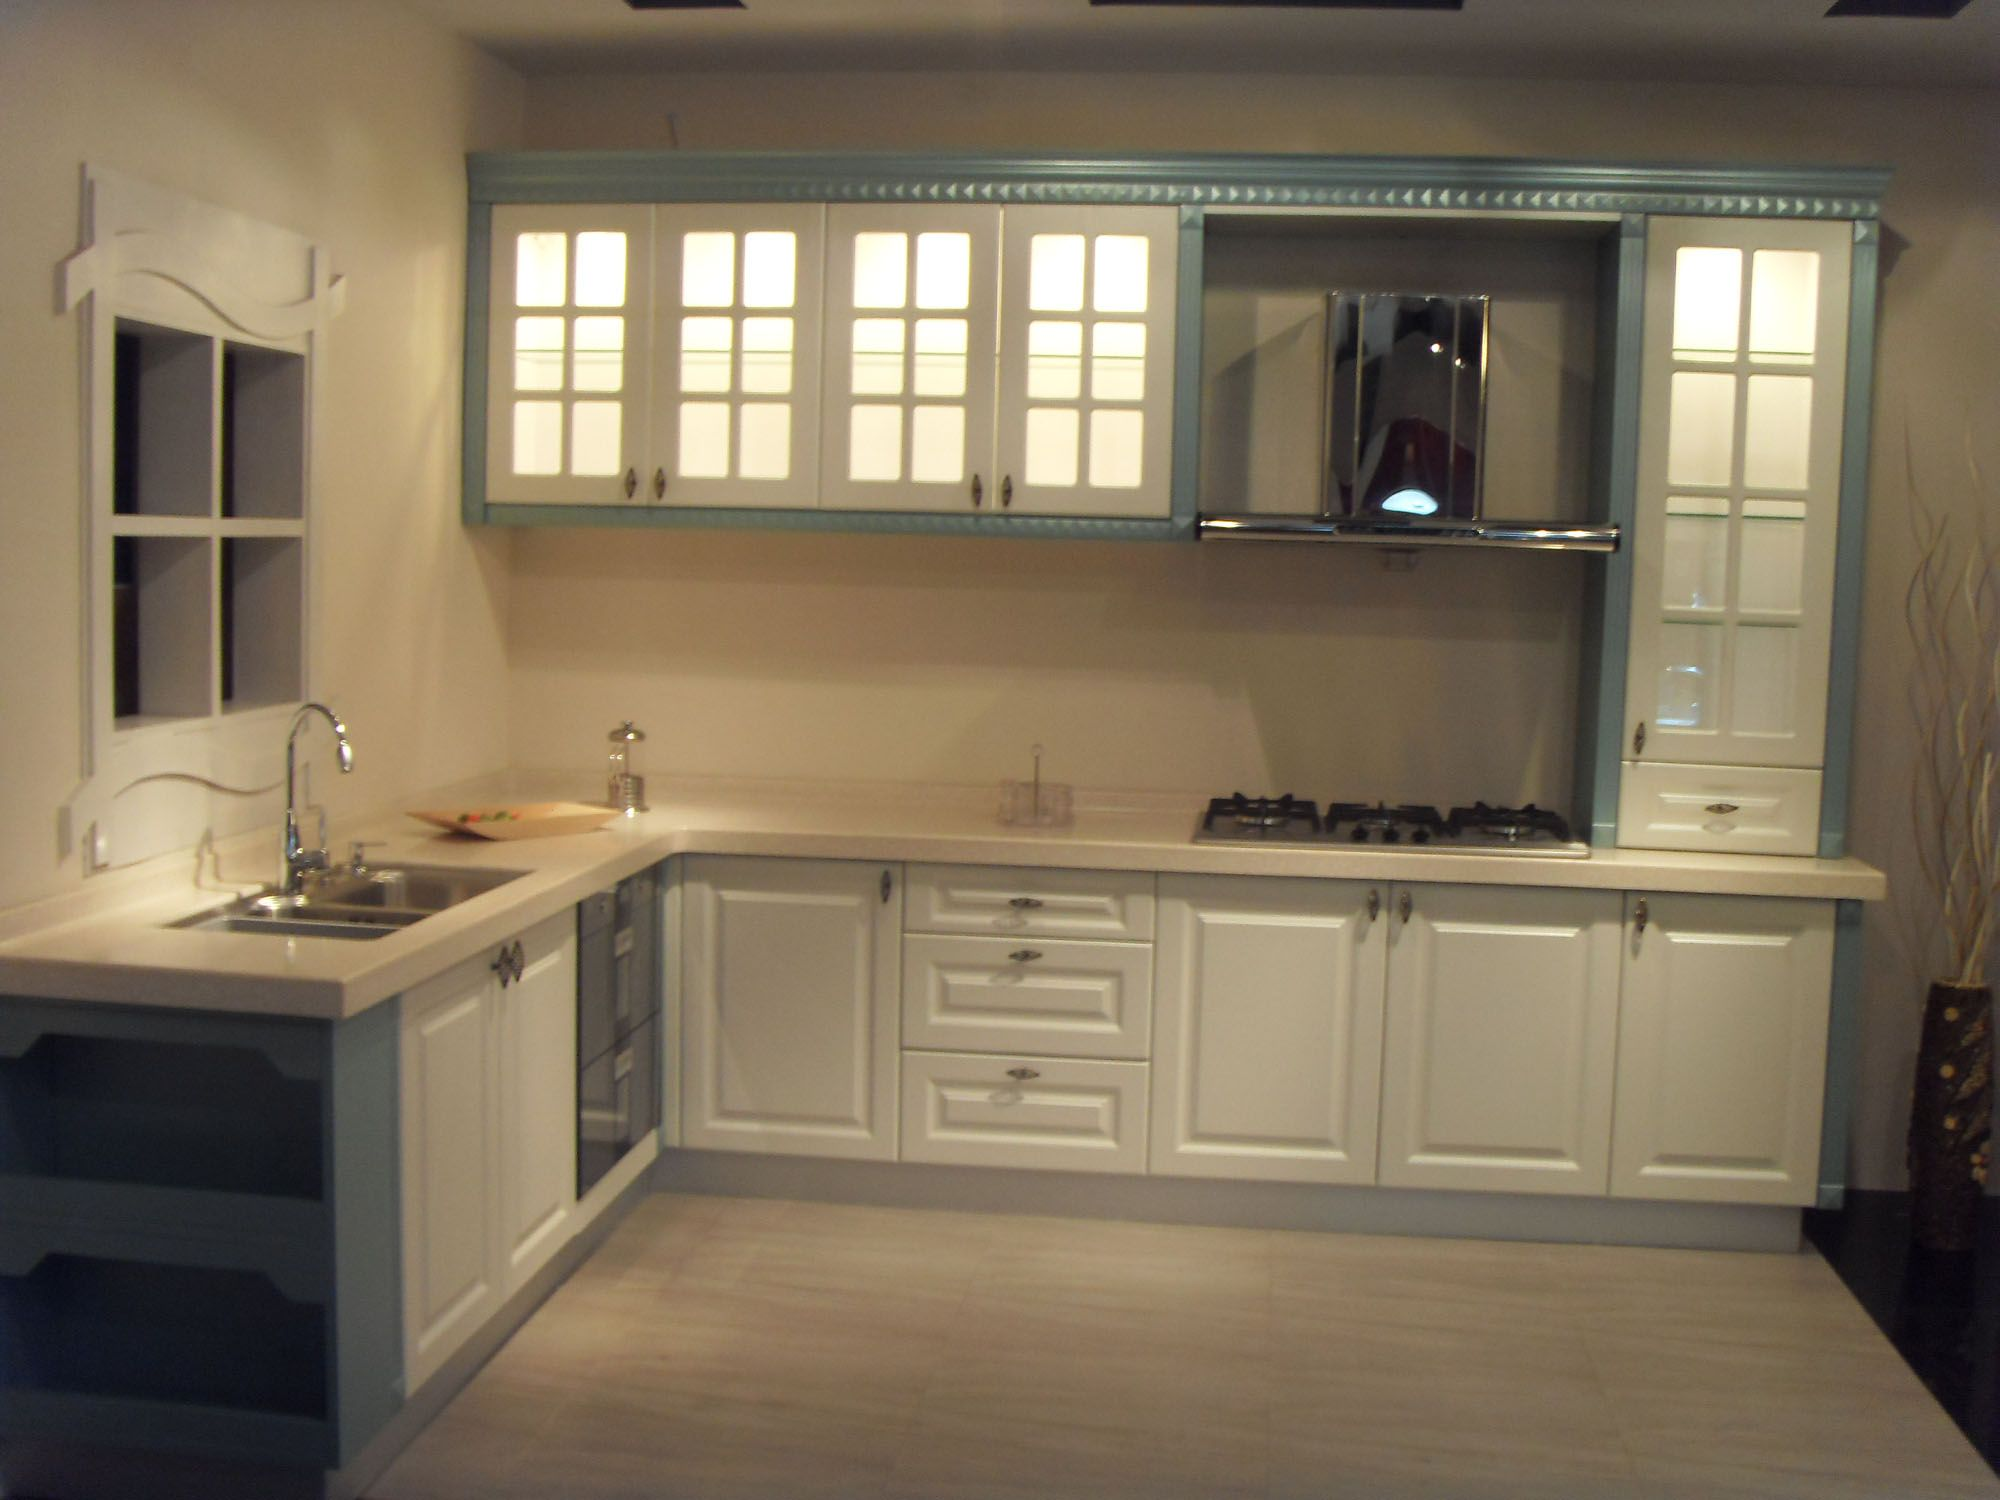 Kitchen Cabinets   Mobile home kitchen cabinets, Hanging ...